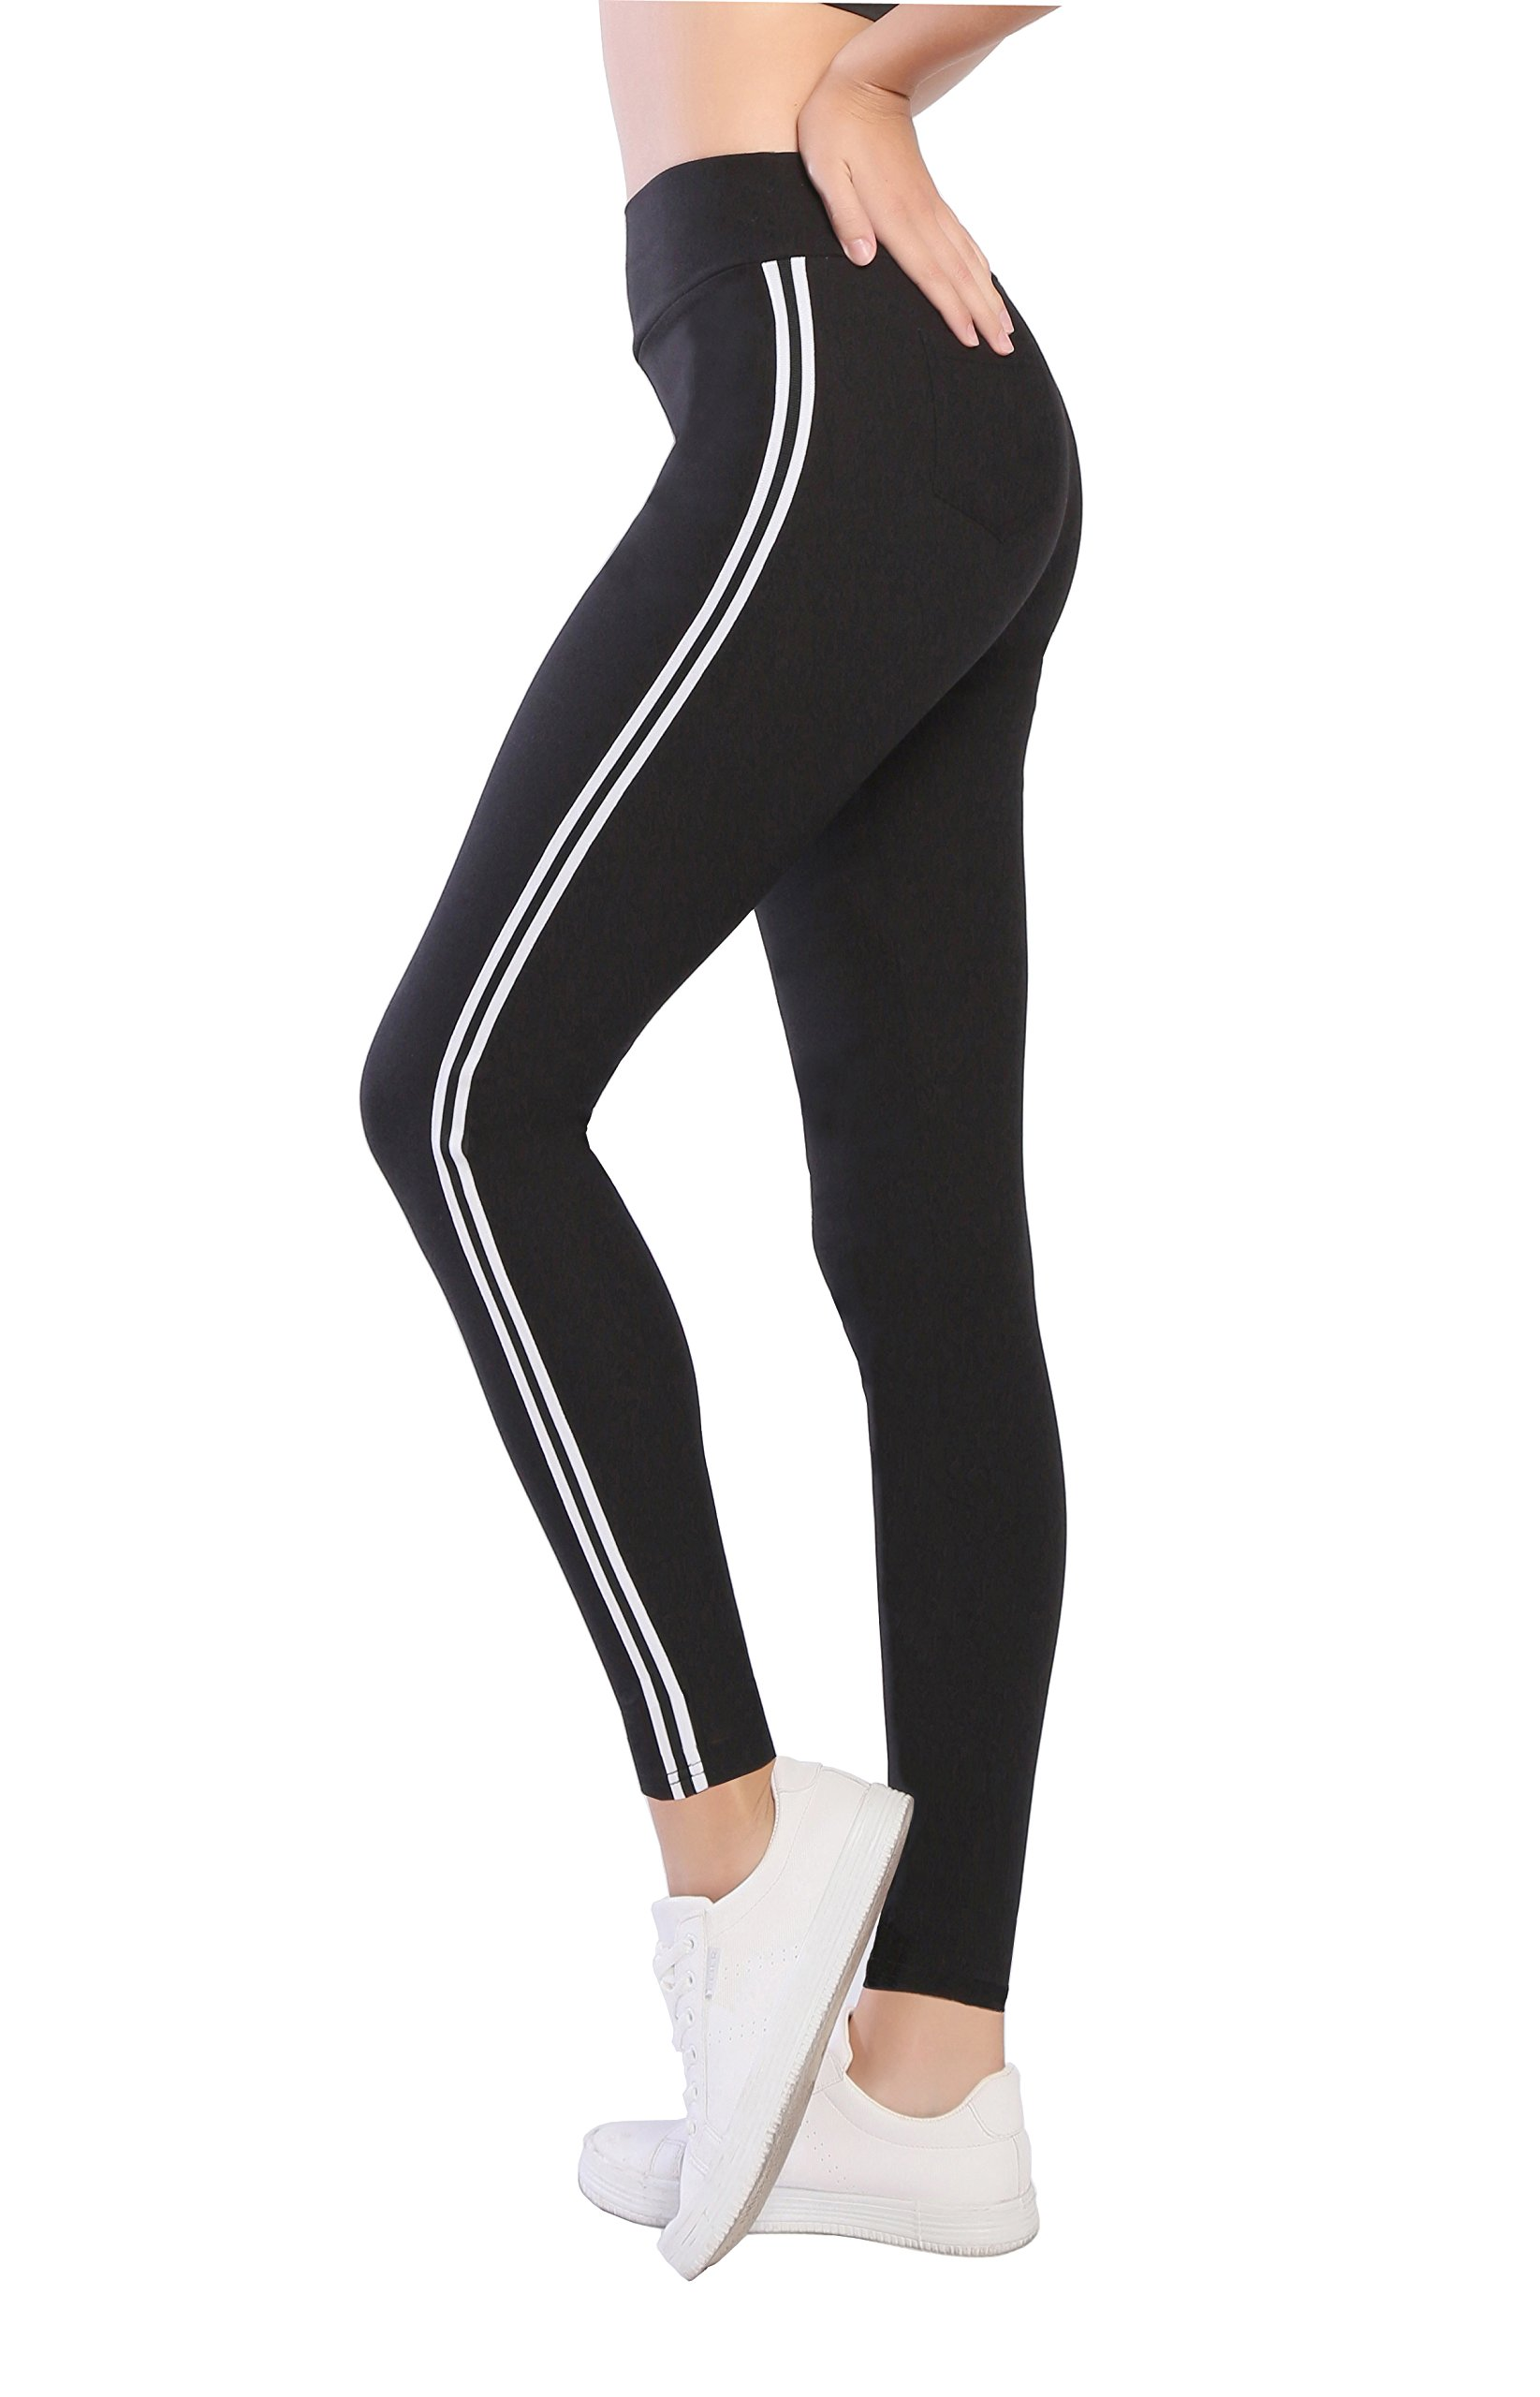 Benjuk Women High Waist Elastic Waistband Slim Fit Side Stripe Leggings Athletic Pants,Black